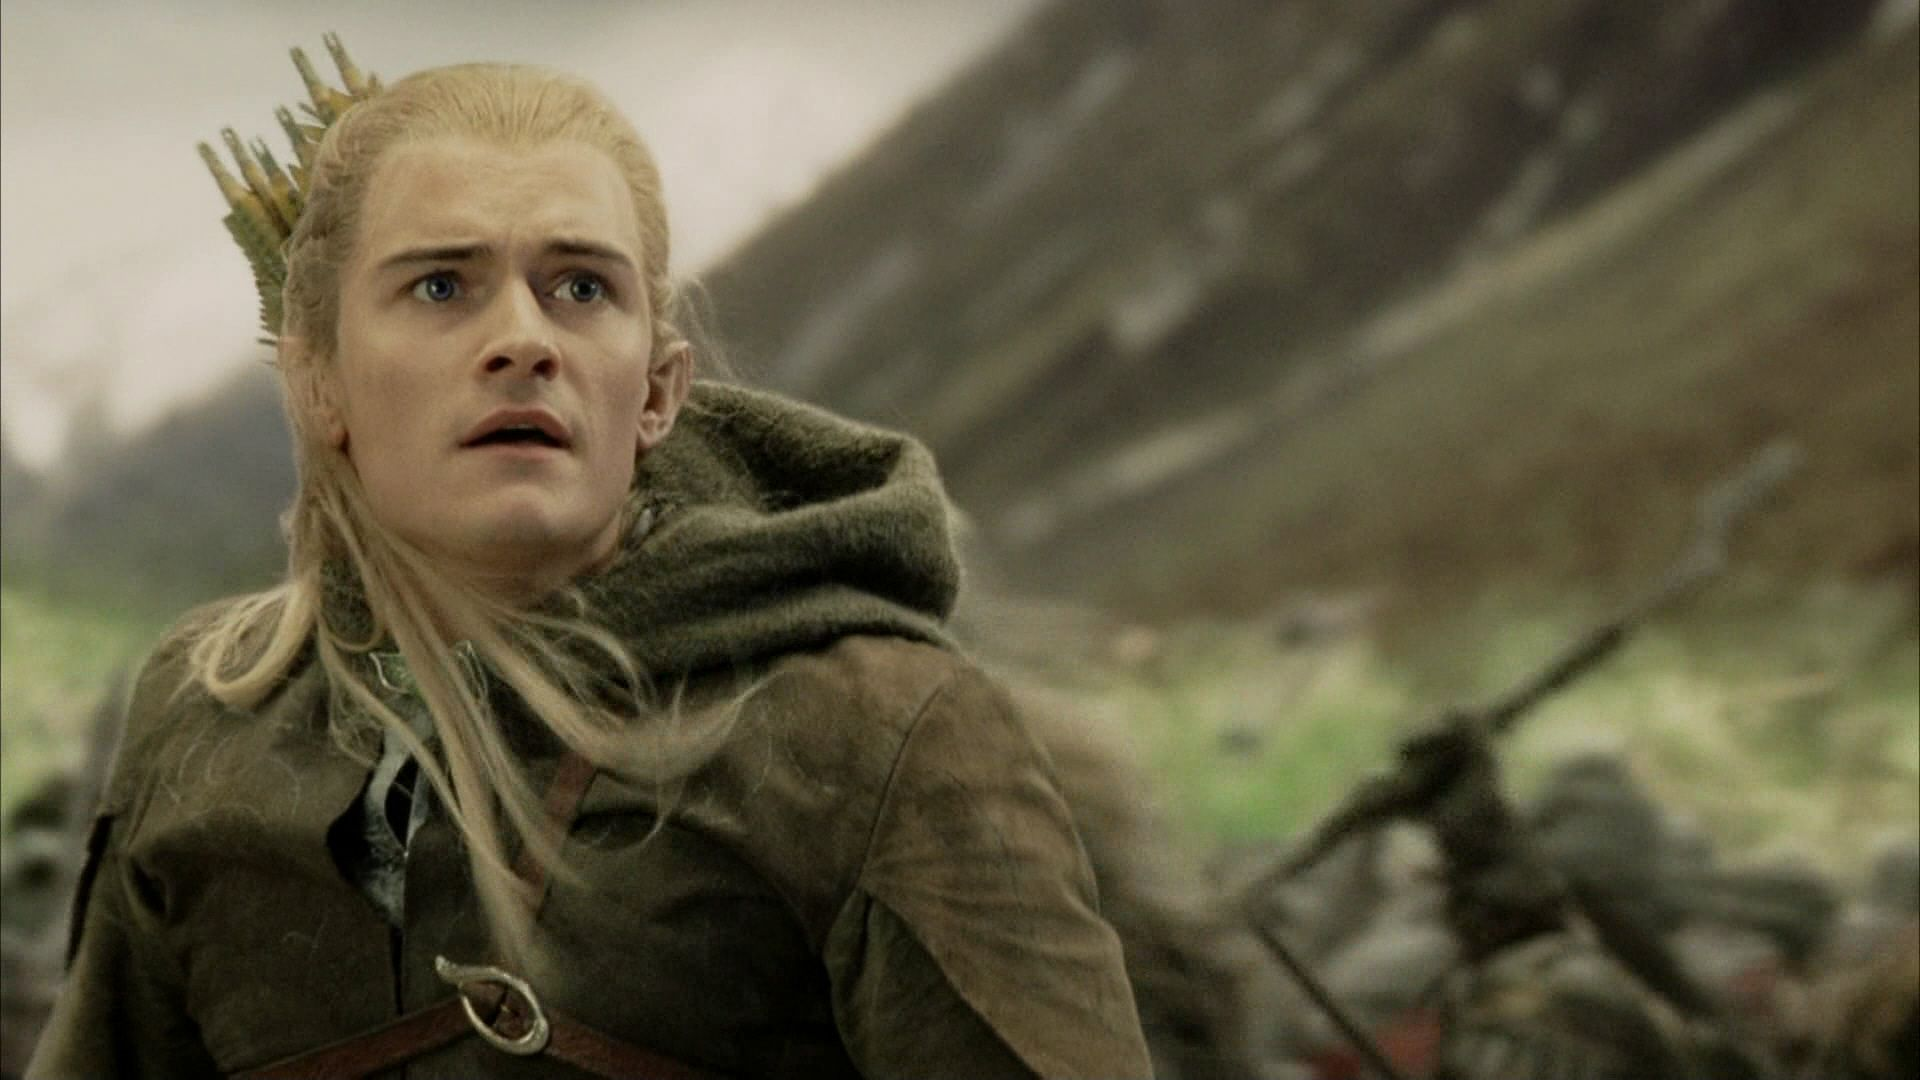 They Re Taking The Hobbits To Isengard Legolas The Hobbit Lord Of The Rings